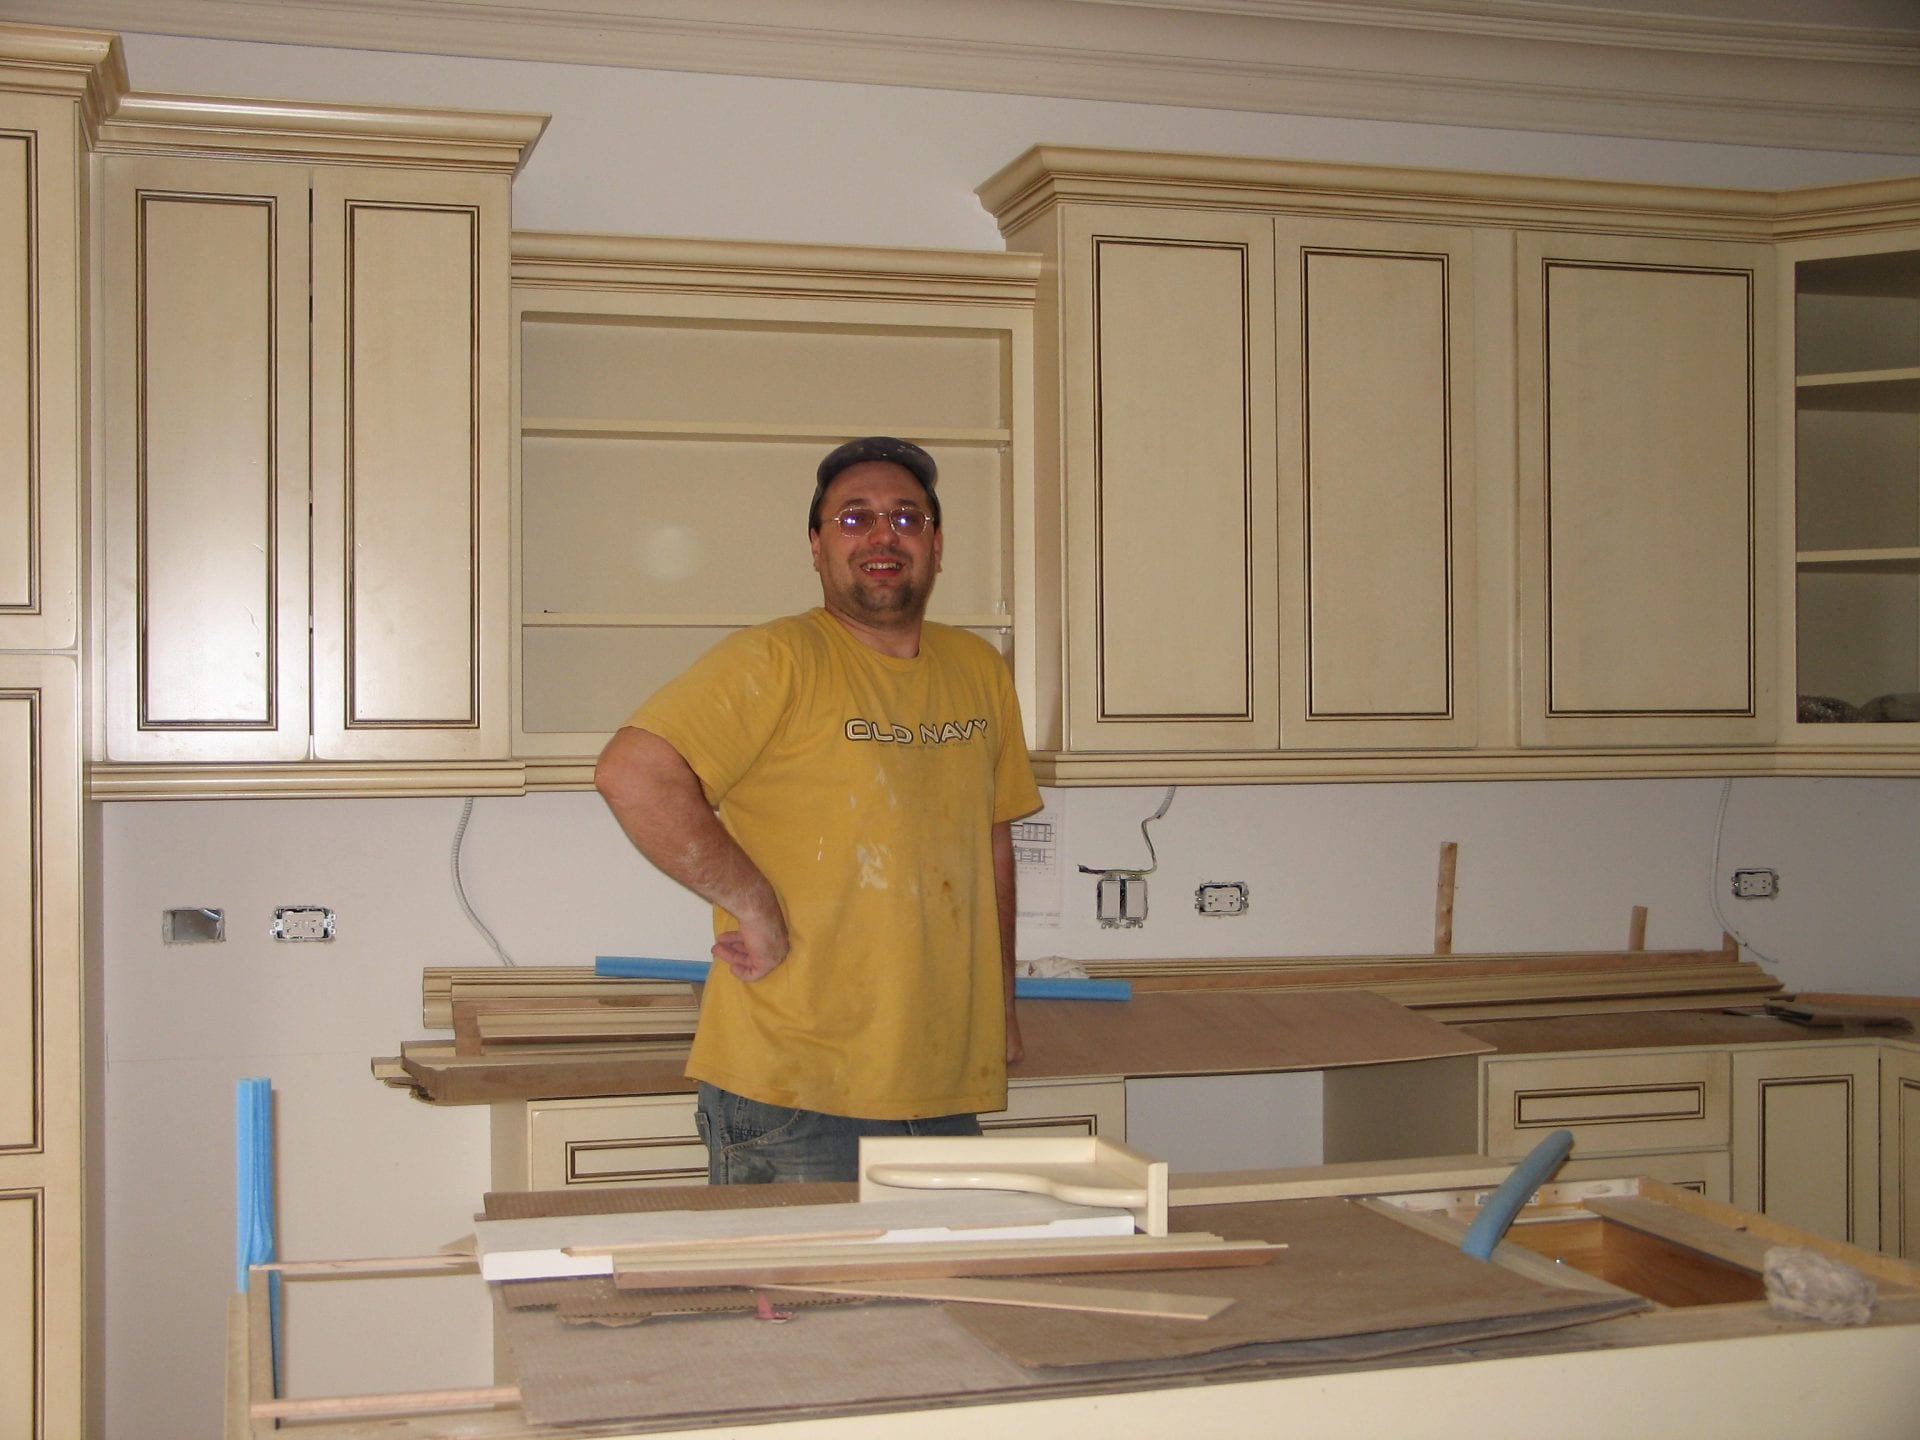 kitchen remodeling companies Glenview il